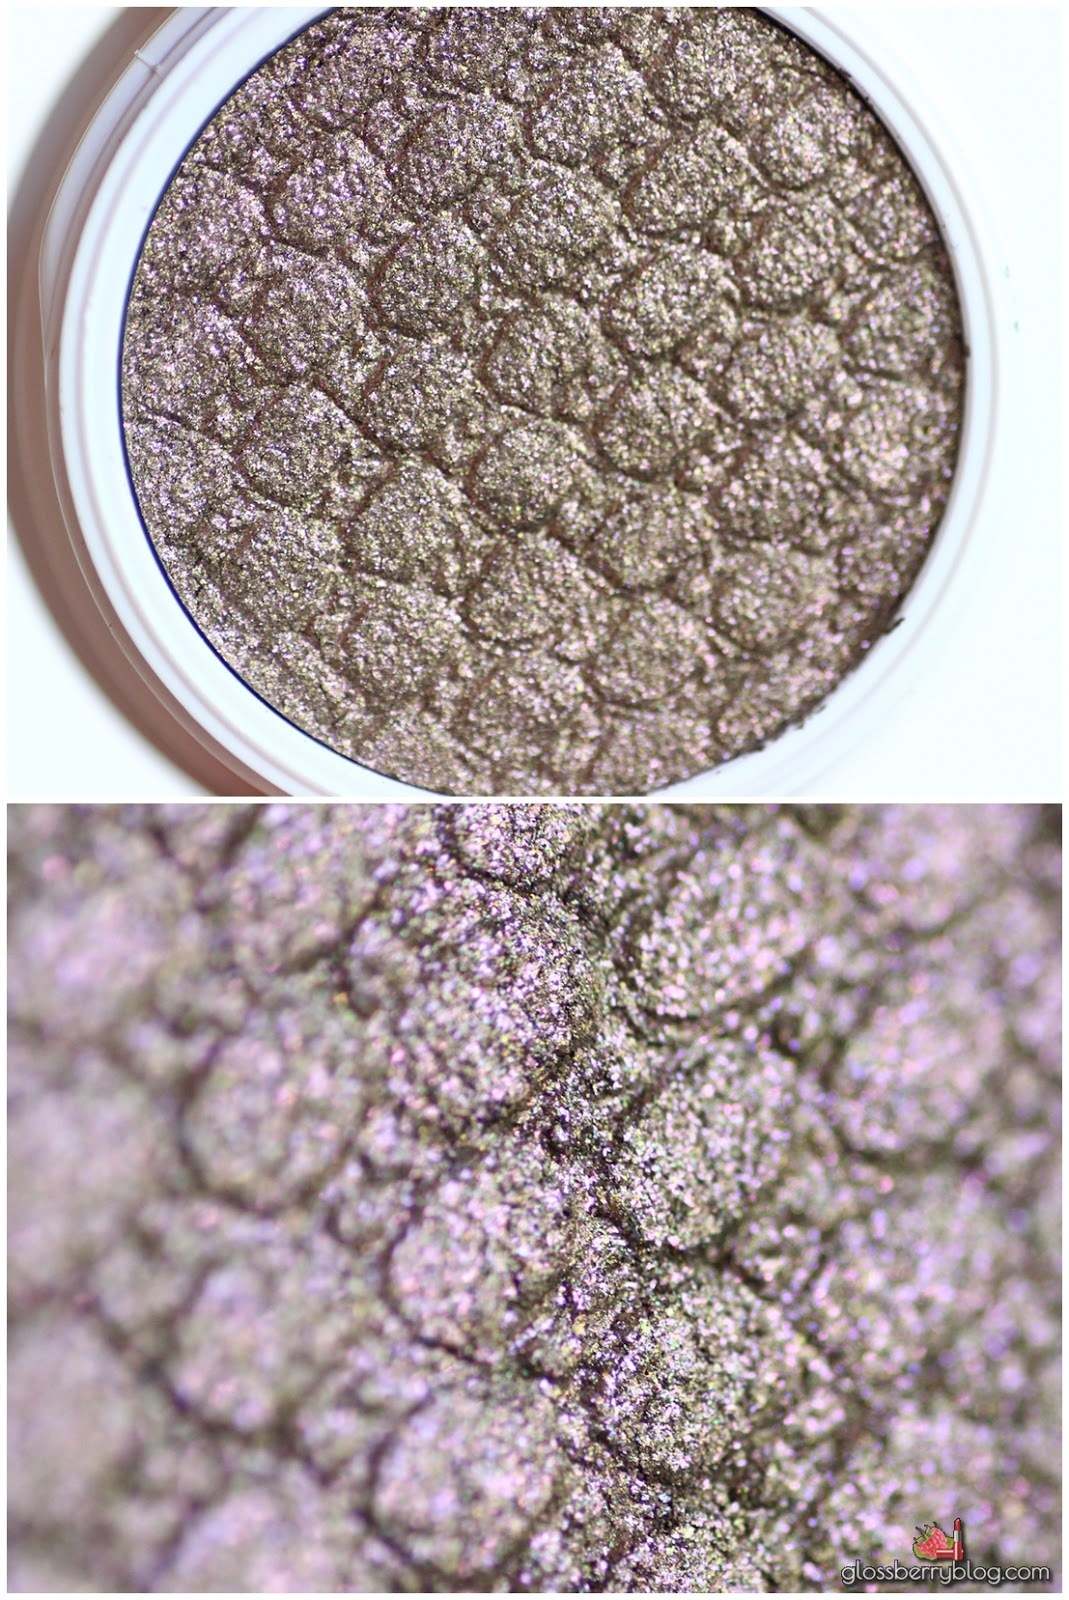 colorpop colourpop supershock super shock eyeshadow so quiche review swatch glossberry blog גלוסברי צלליות קולורפופ